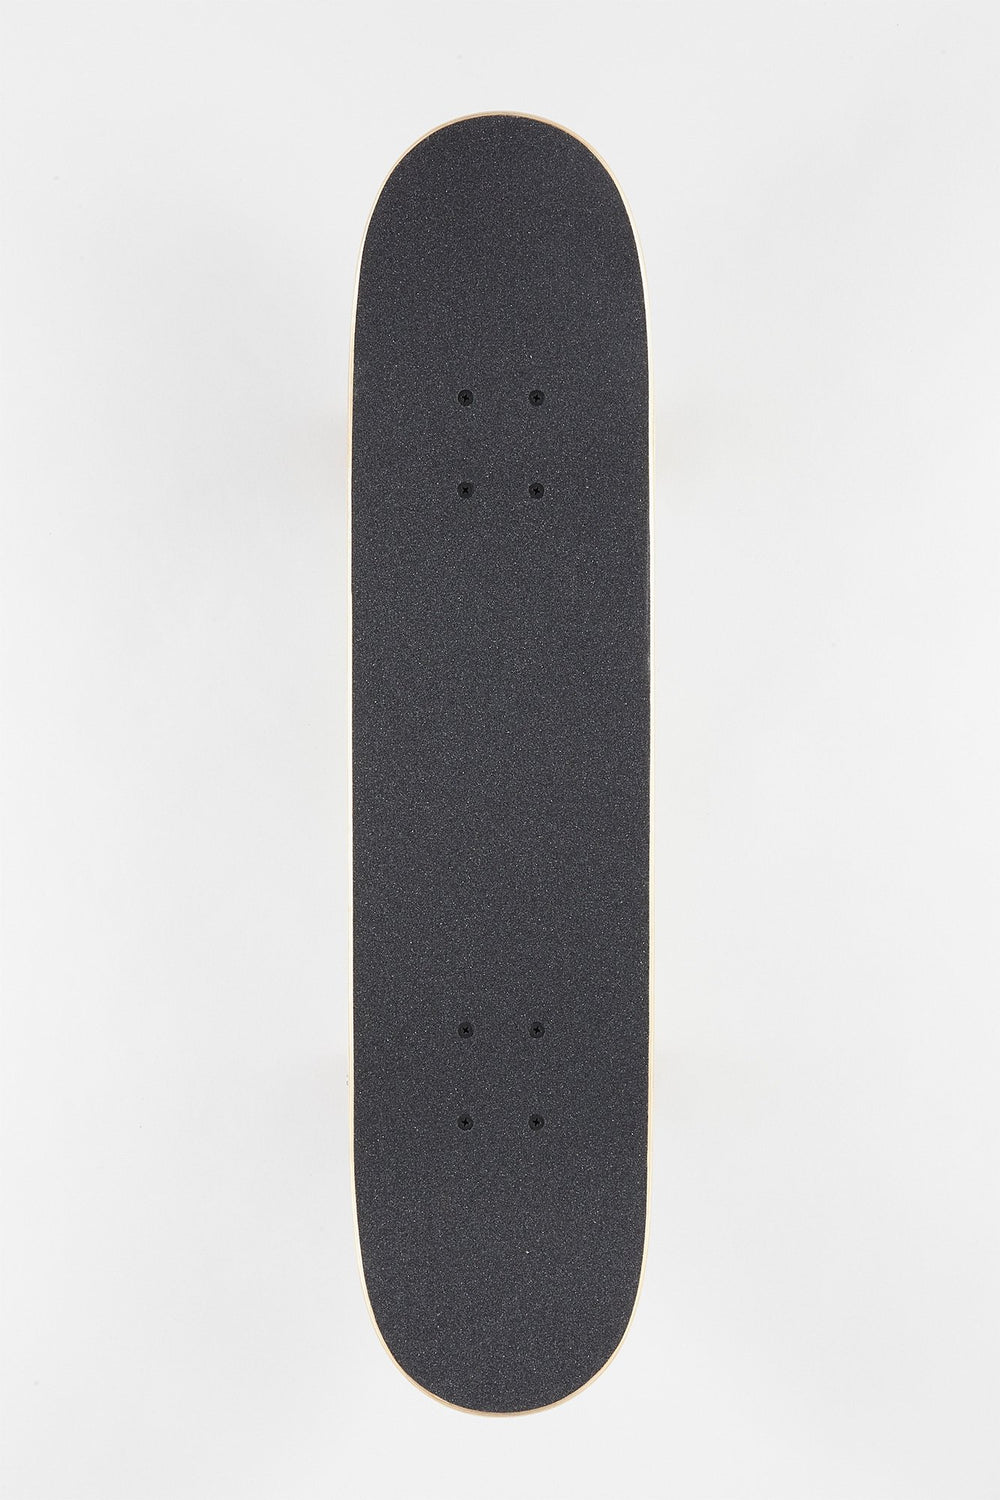 Blind Pint Sized Skateboard 7